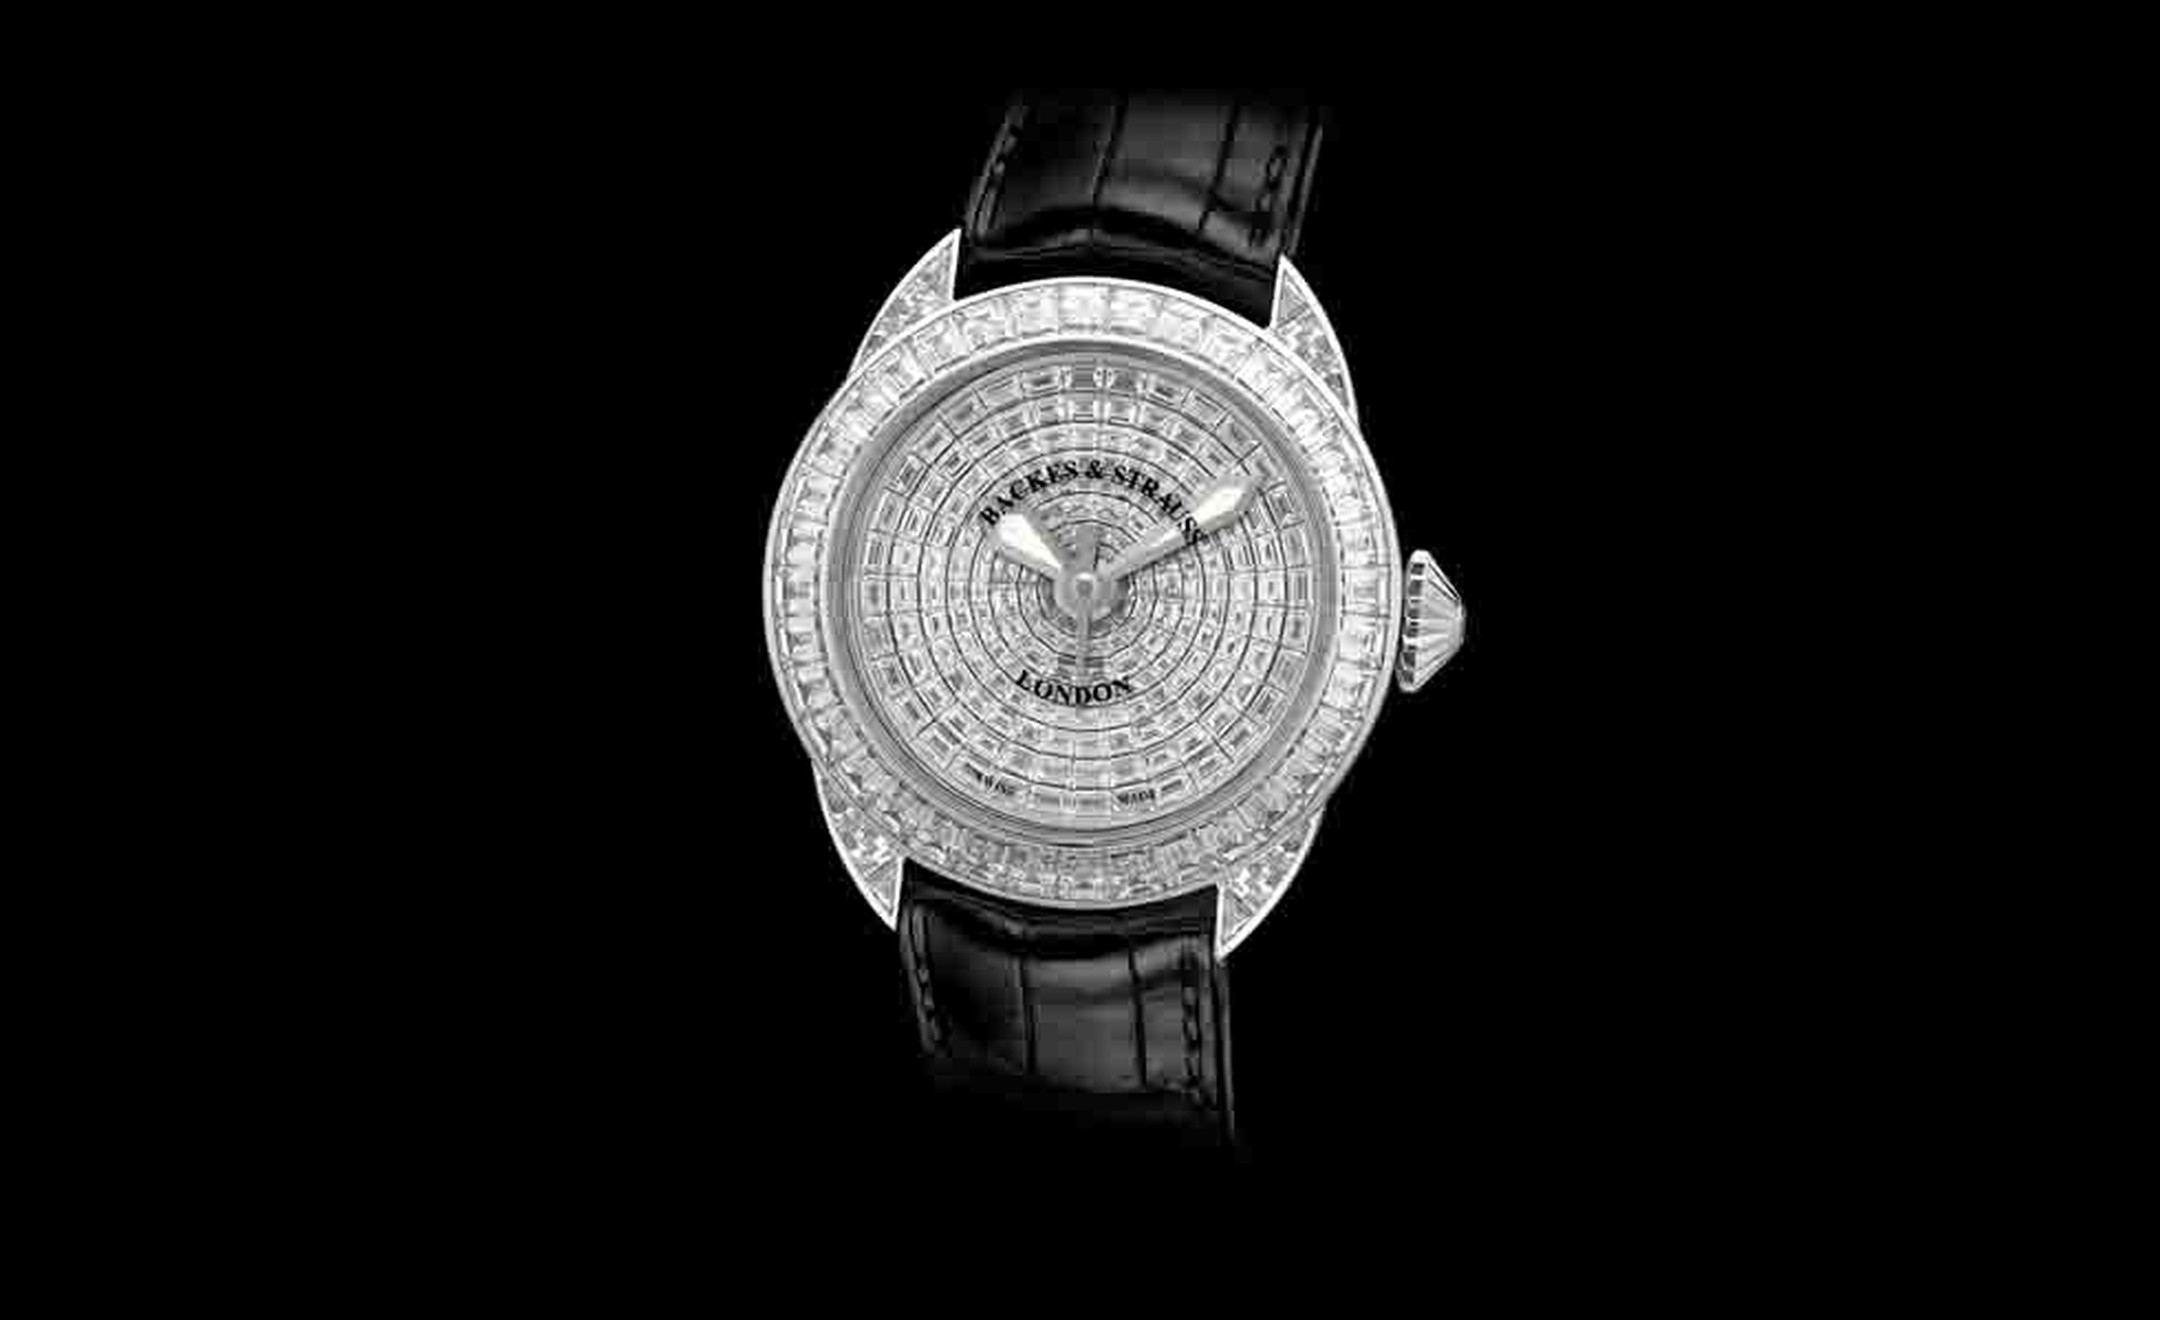 Backes & Strauss. The Piccadilly Prince from The Royal Collection, one of the three Princes, Limited Edition. Individually cut and polished baguette diamonds Hand stitched alligator strap with white gold thread. Price from £235,715.00.